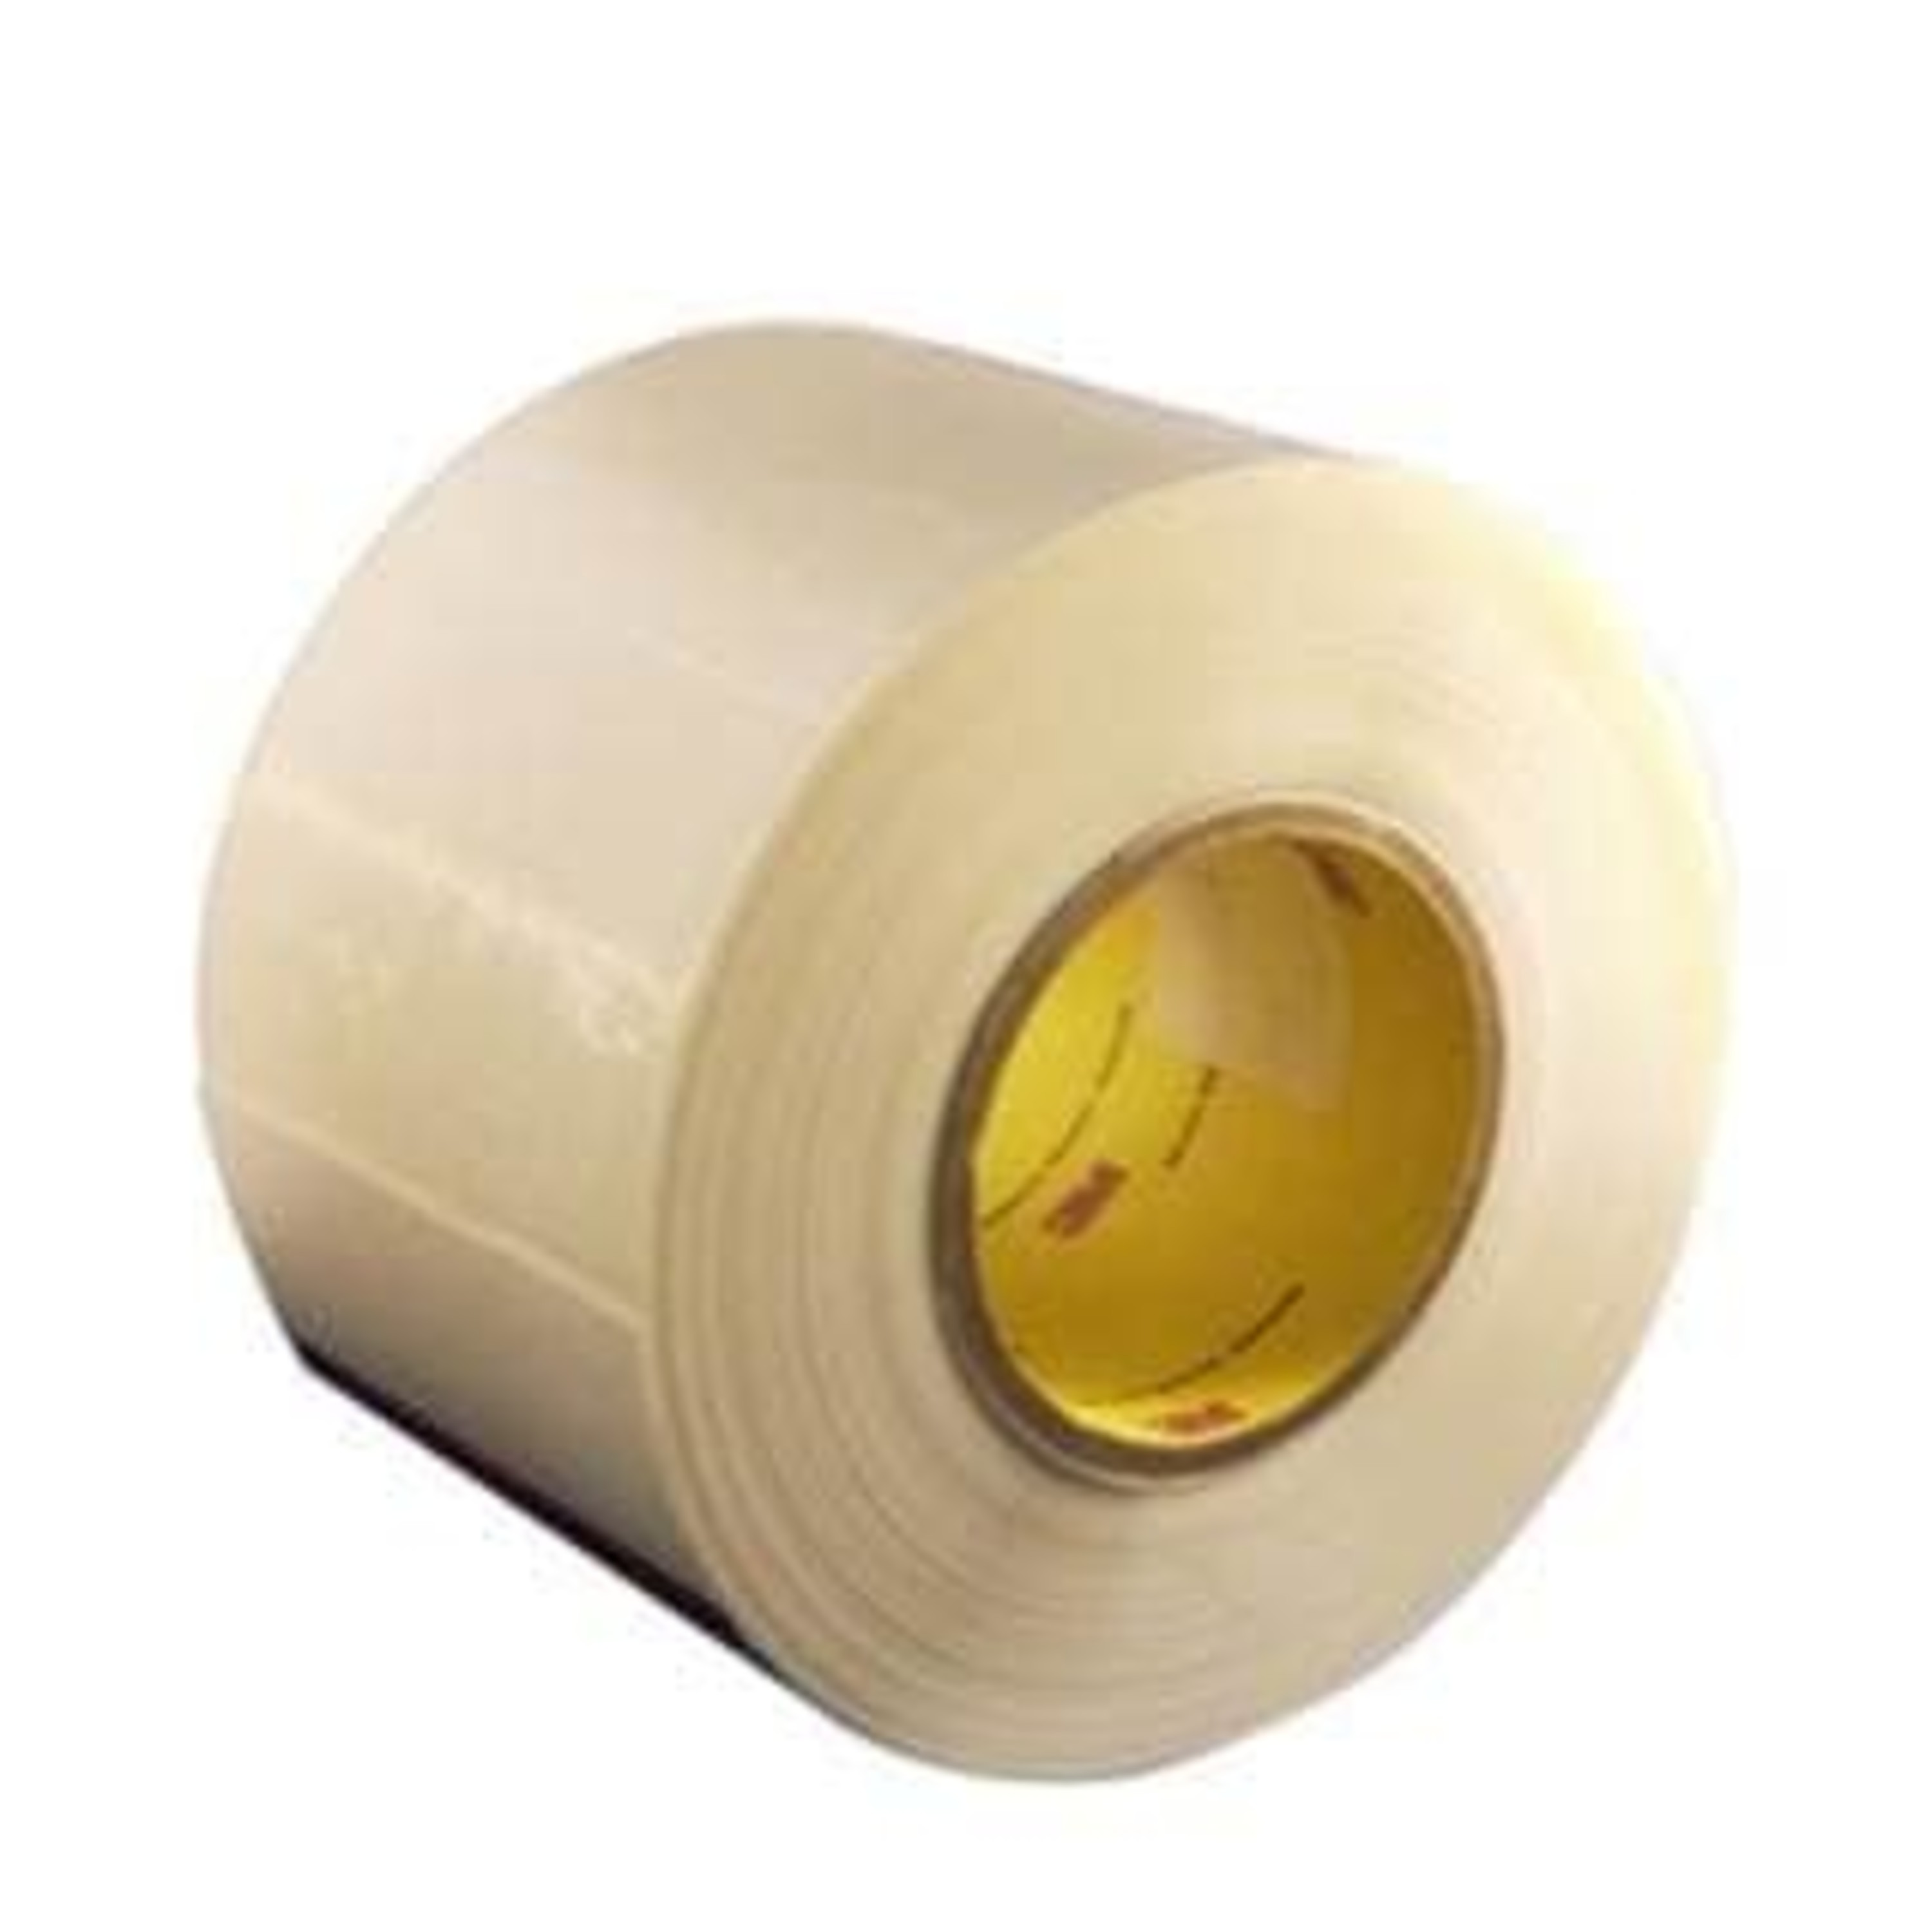 3M™ Polyurethane Protective Tape 8673 Transparent 4 in x 3 yd, 1 Roll/Case, Sample